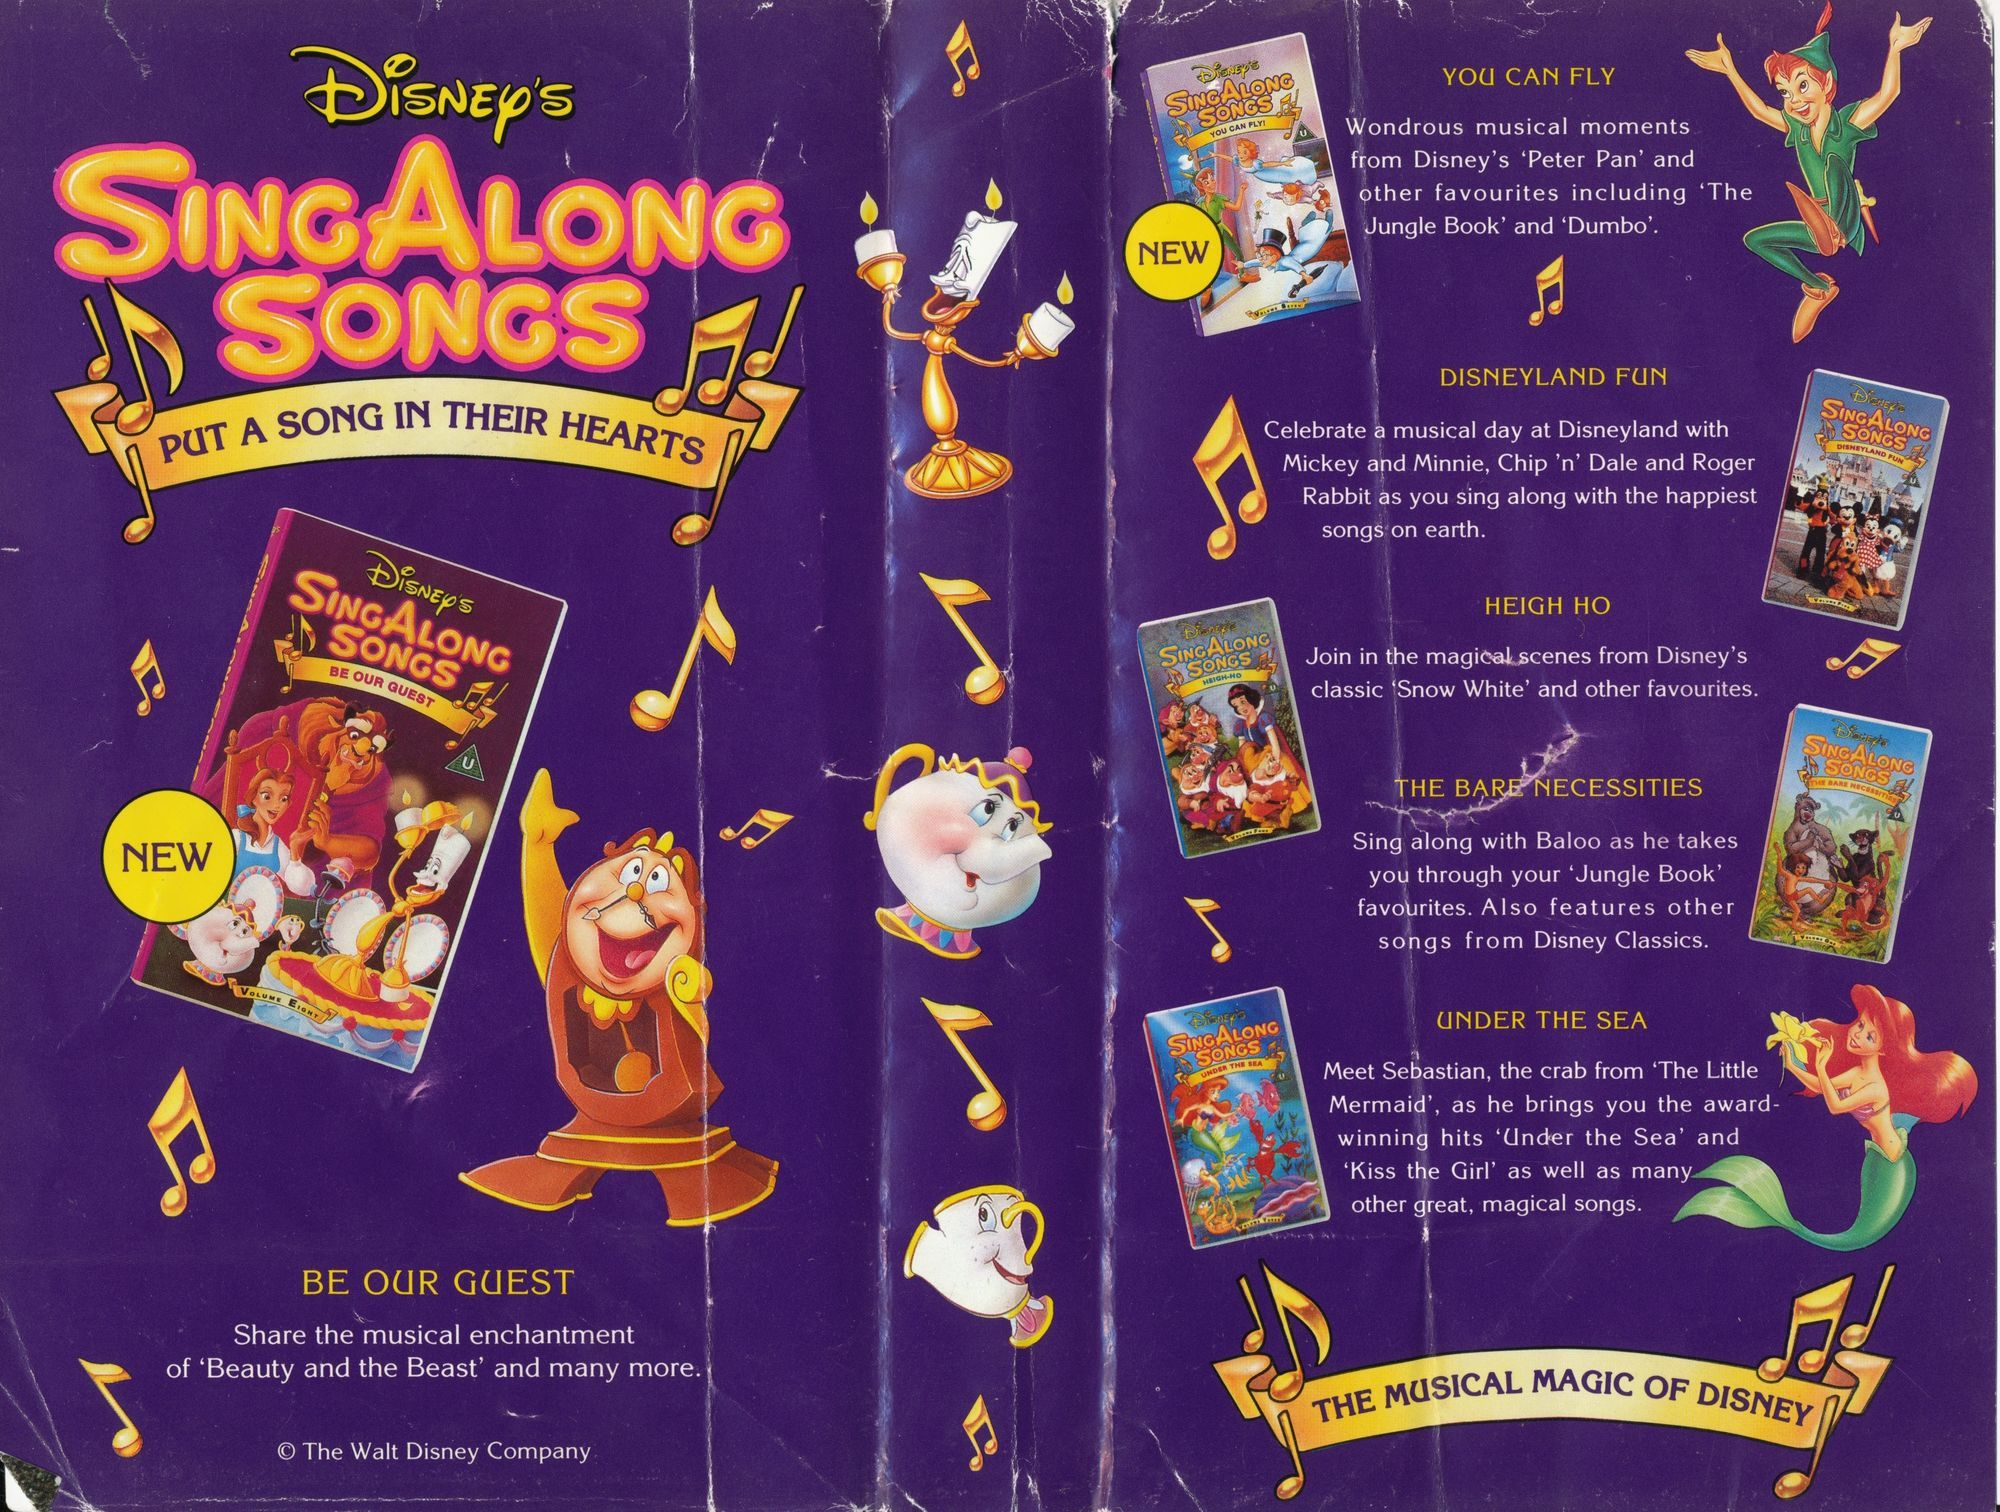 Good Sing Along Songs : disney sing along songs good to know sing along songs singing songs ~ Vivirlamusica.com Haus und Dekorationen